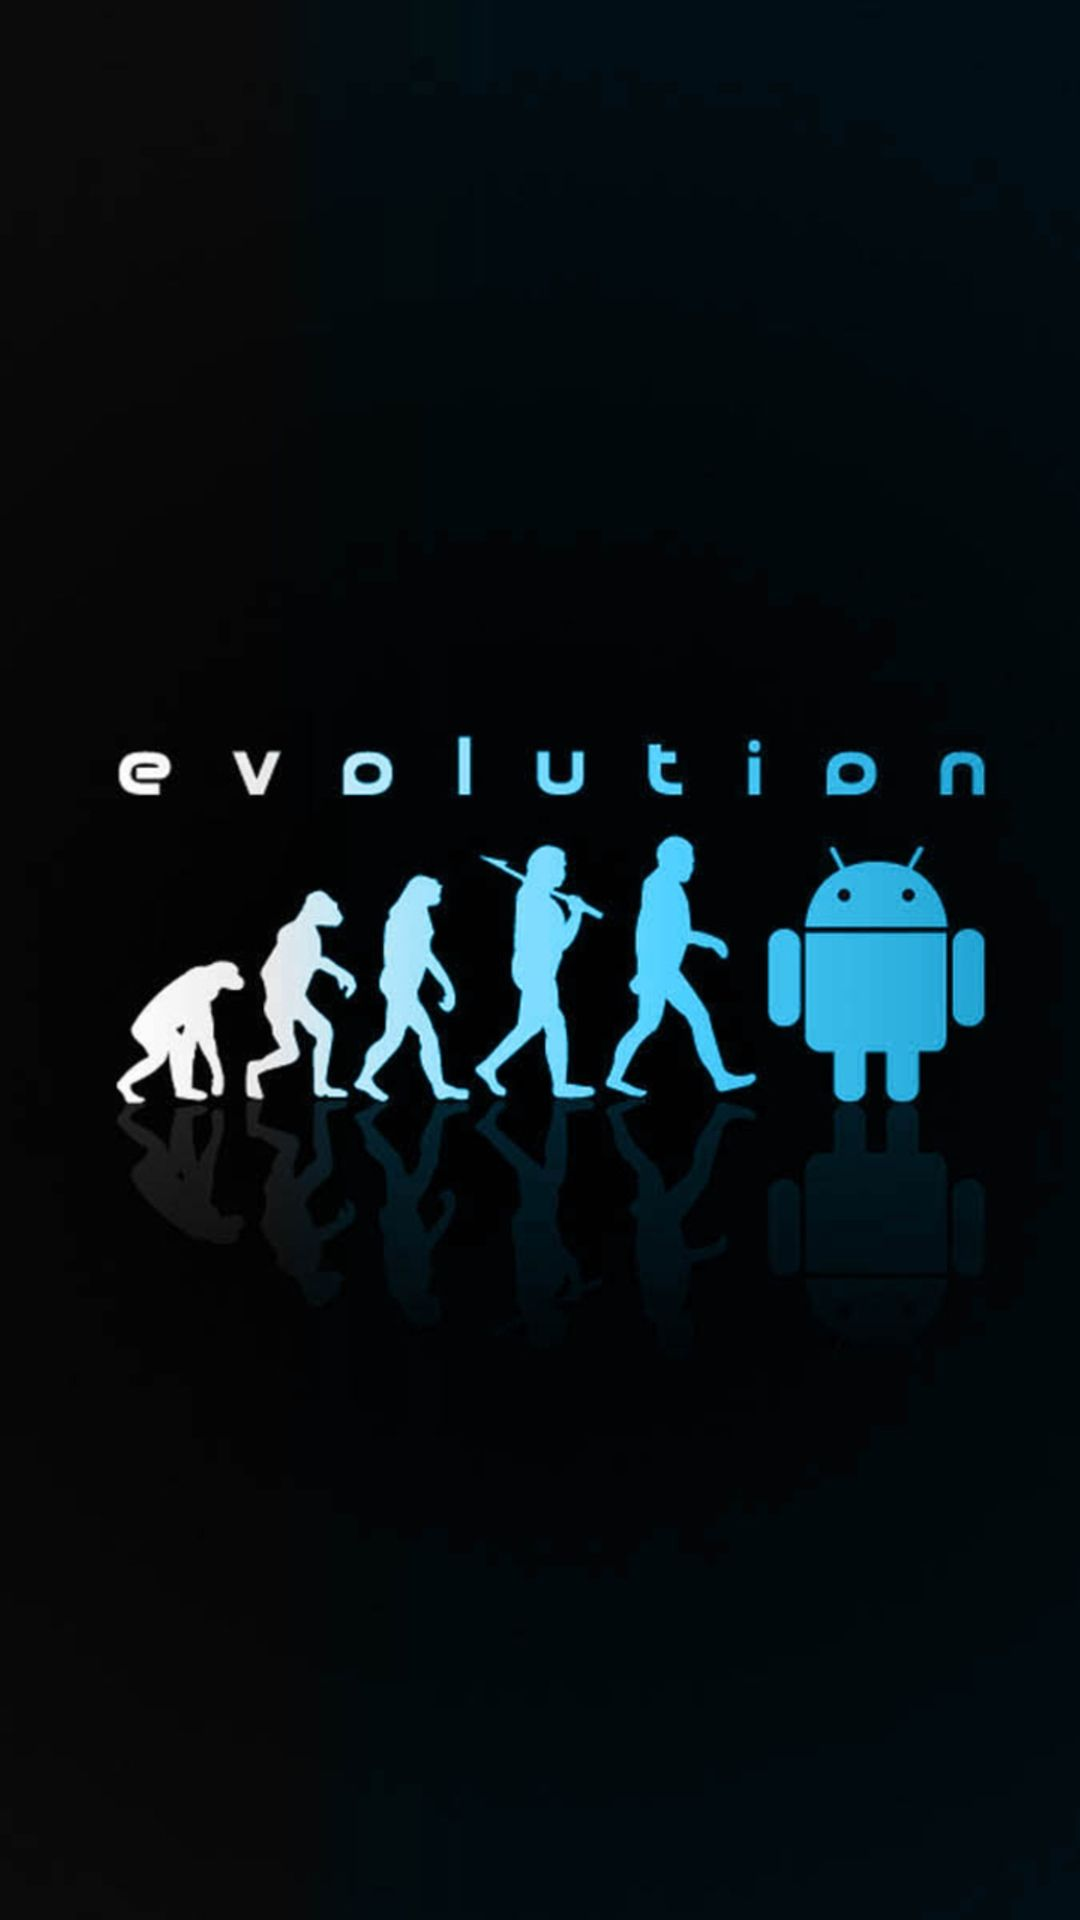 android evolution android wallpaper